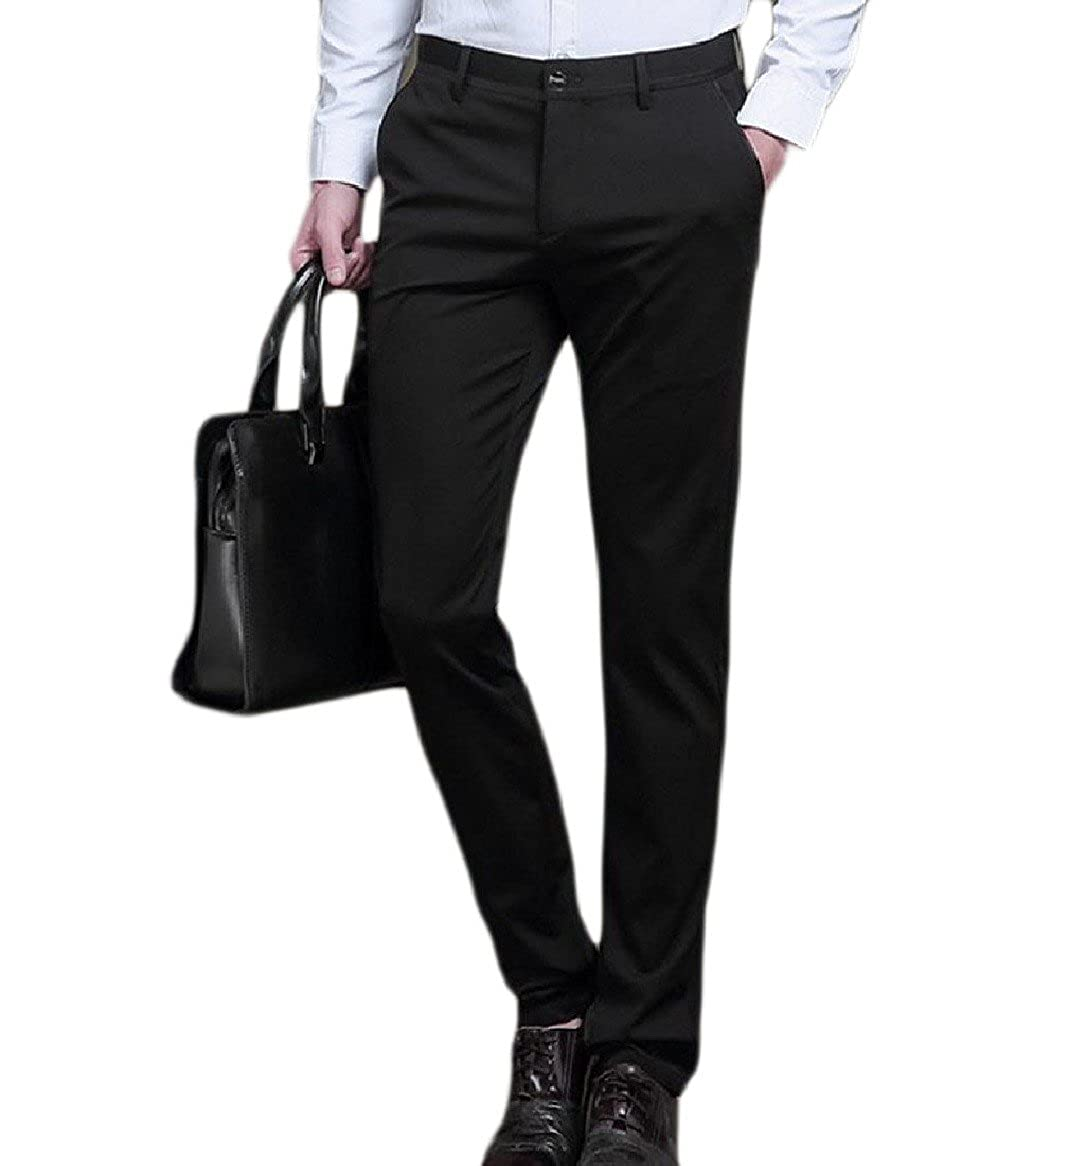 Tootless-Men Straight Flat Front Business Slim Fitted Solid Suit Separate Pant